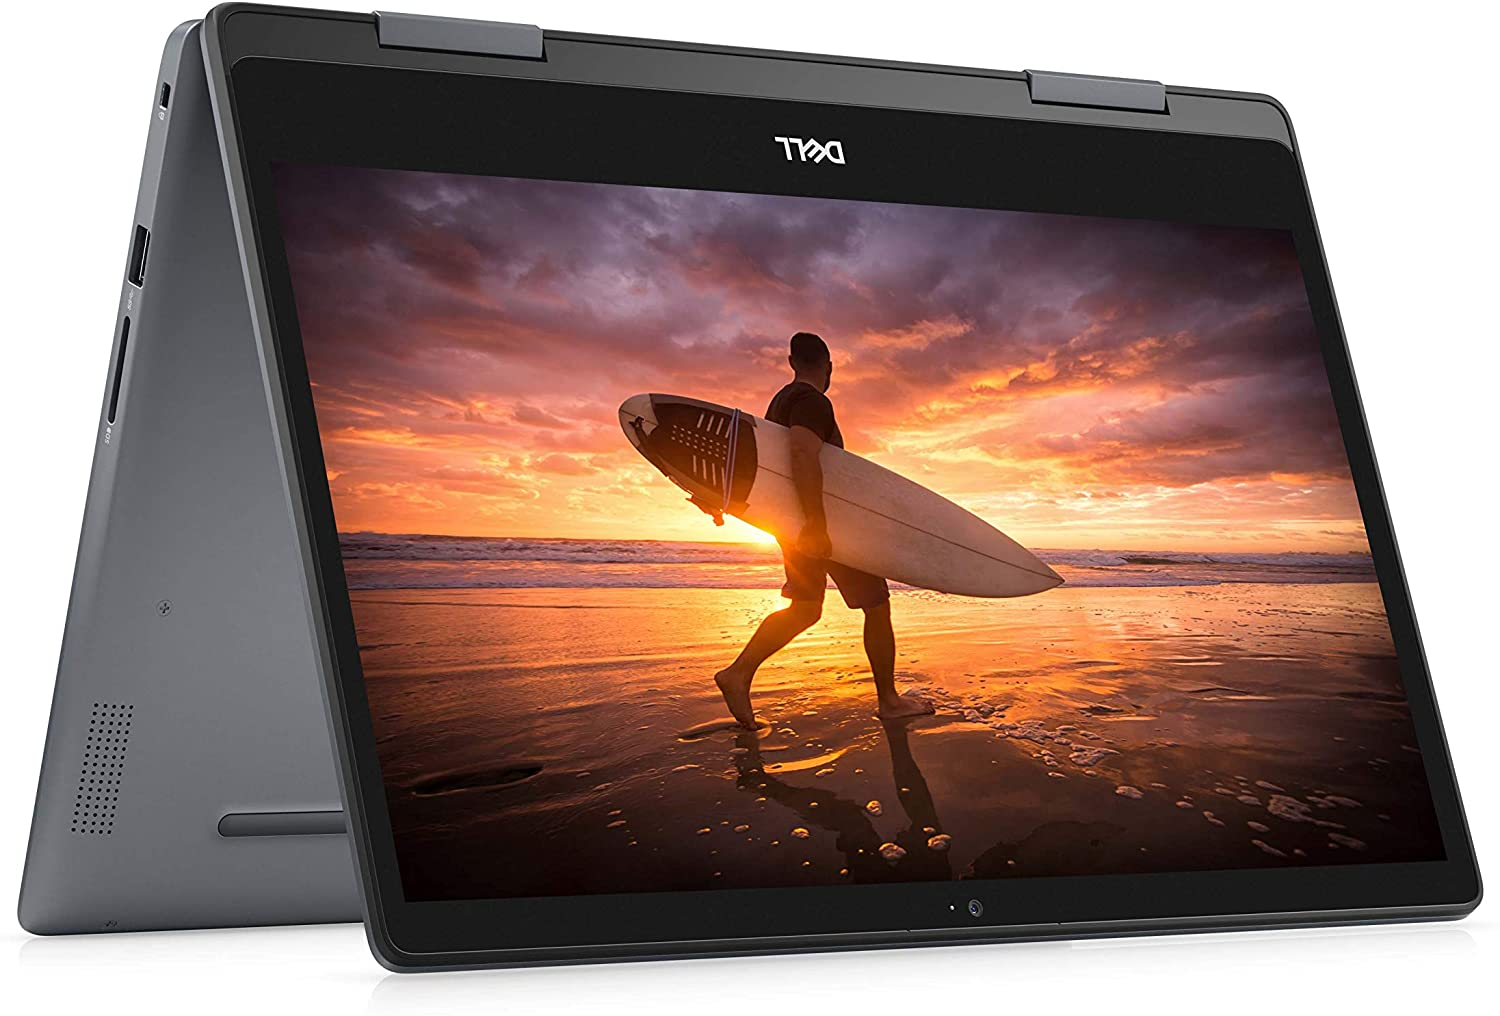 Dell Inspiron 14 Inch 2 in 1 Convertible Touchscreen Laptop 1